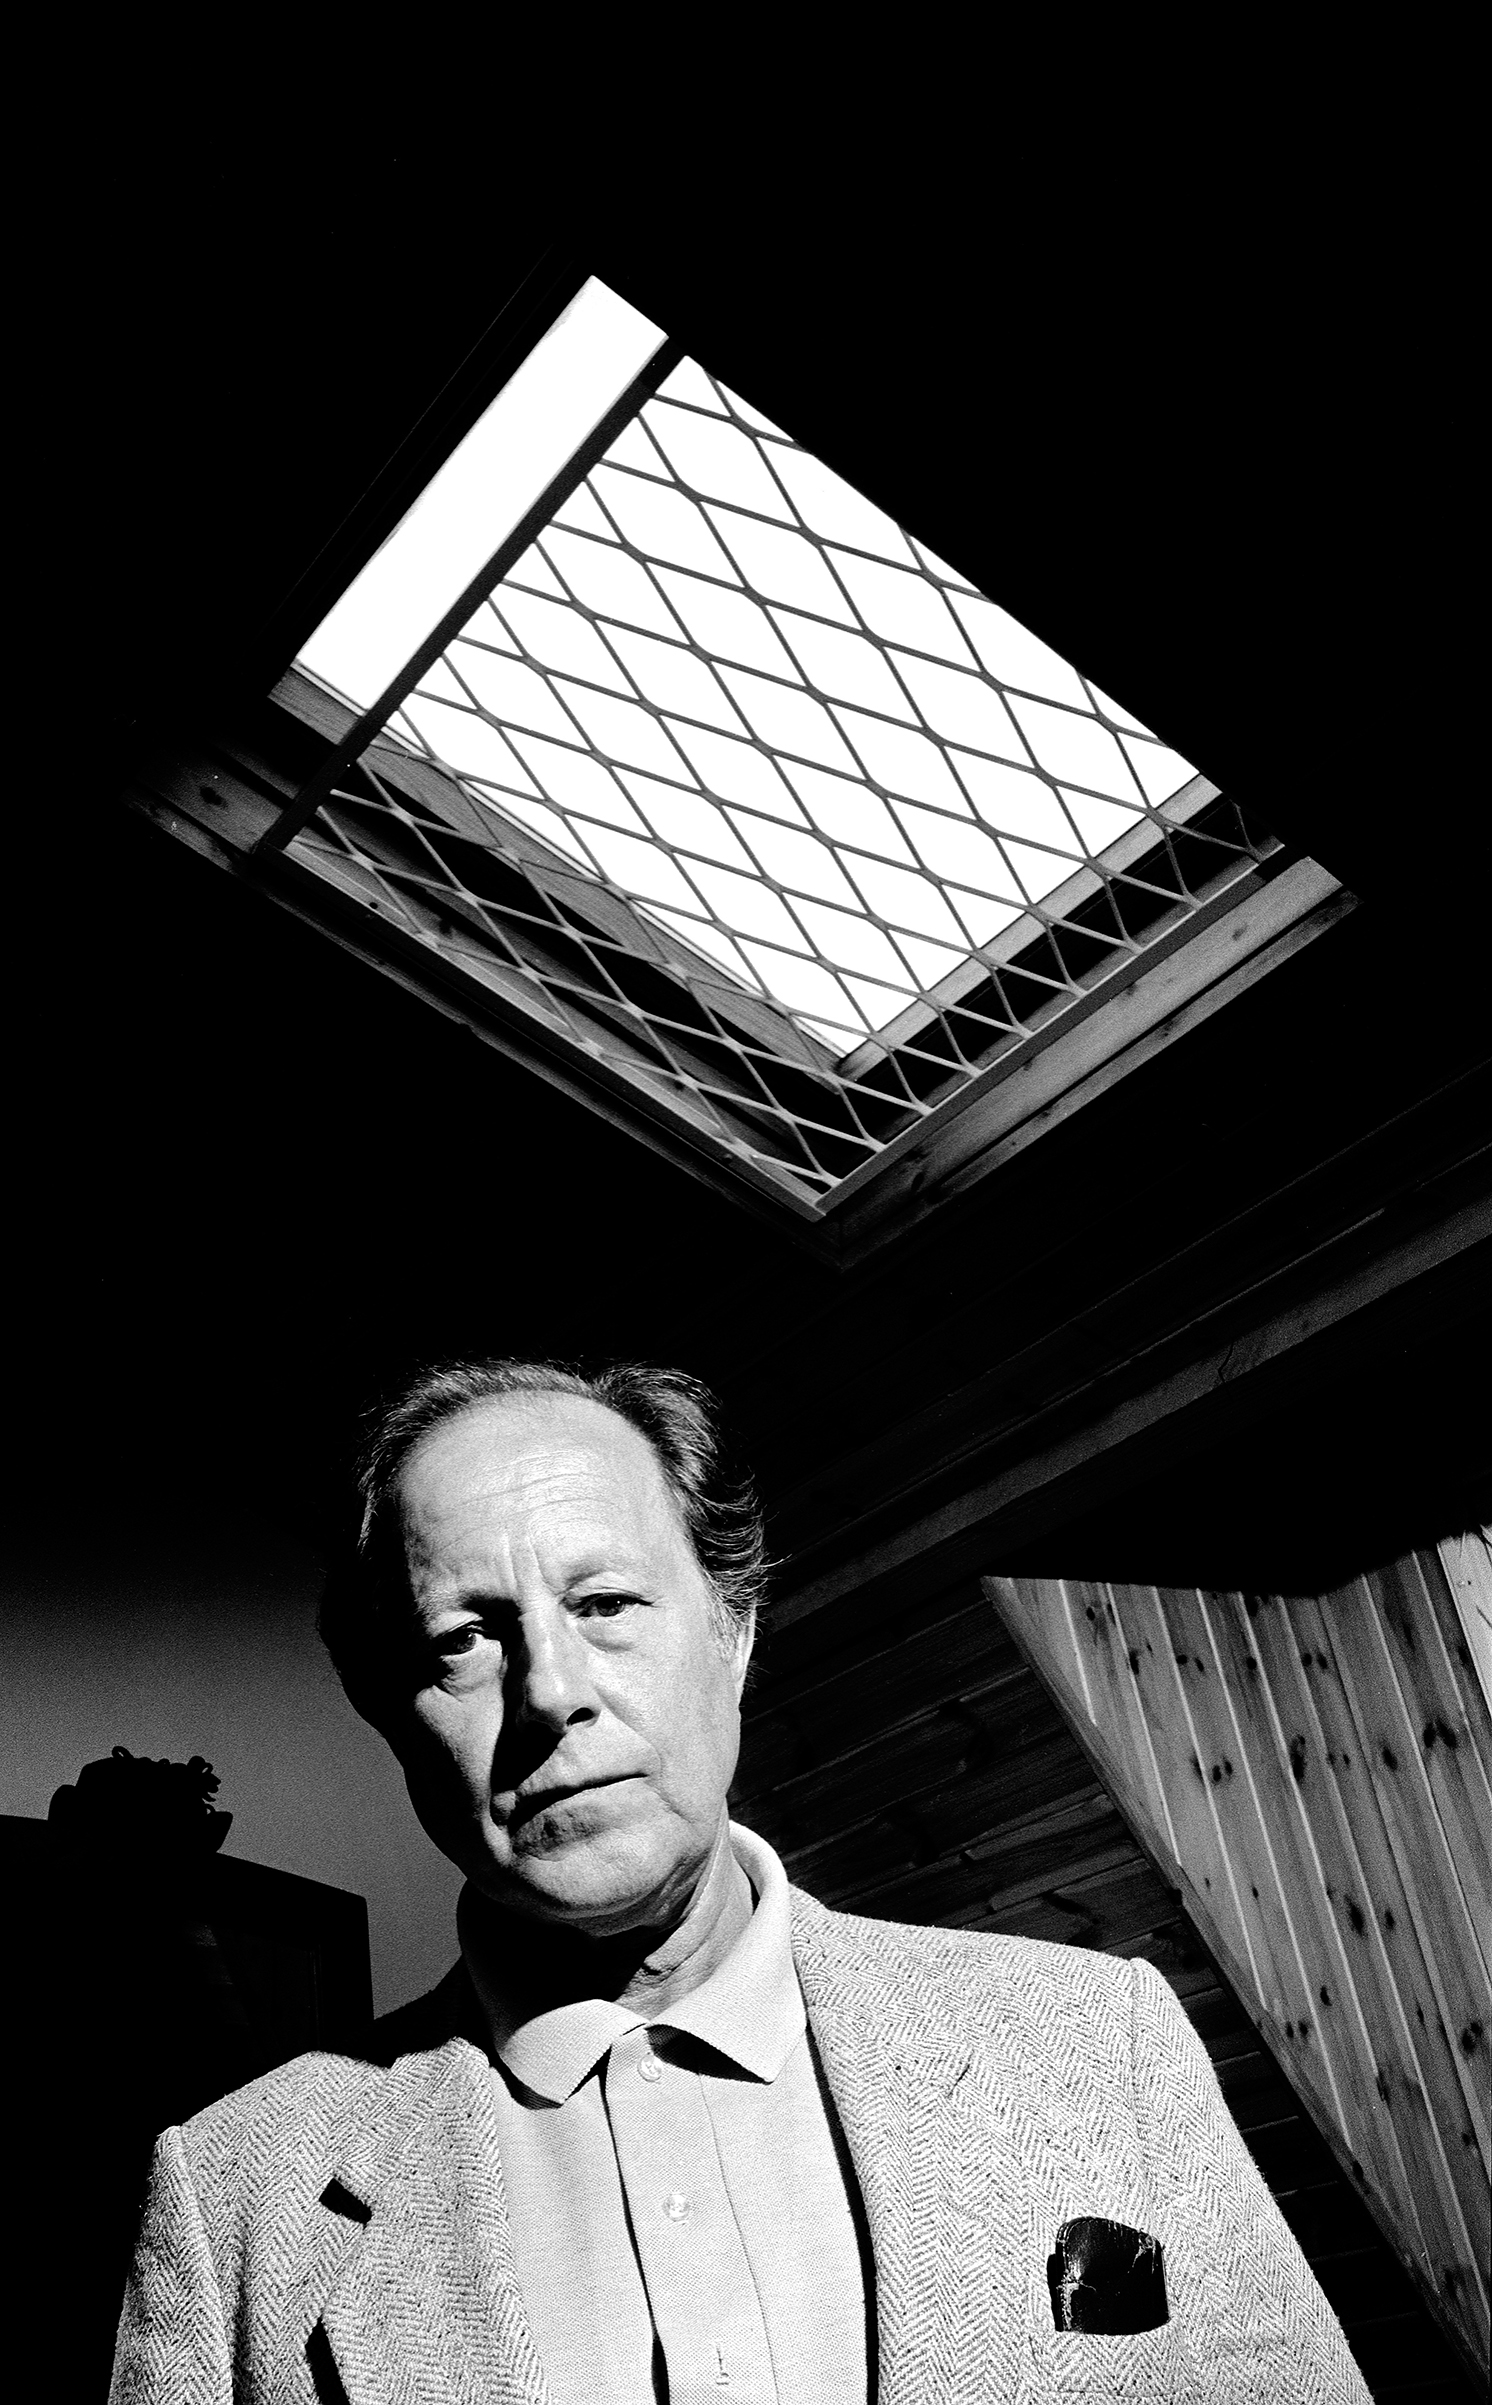 Film Director, Nicolas Roeg photographed at his home in London, 1984, for Time Out Magazine